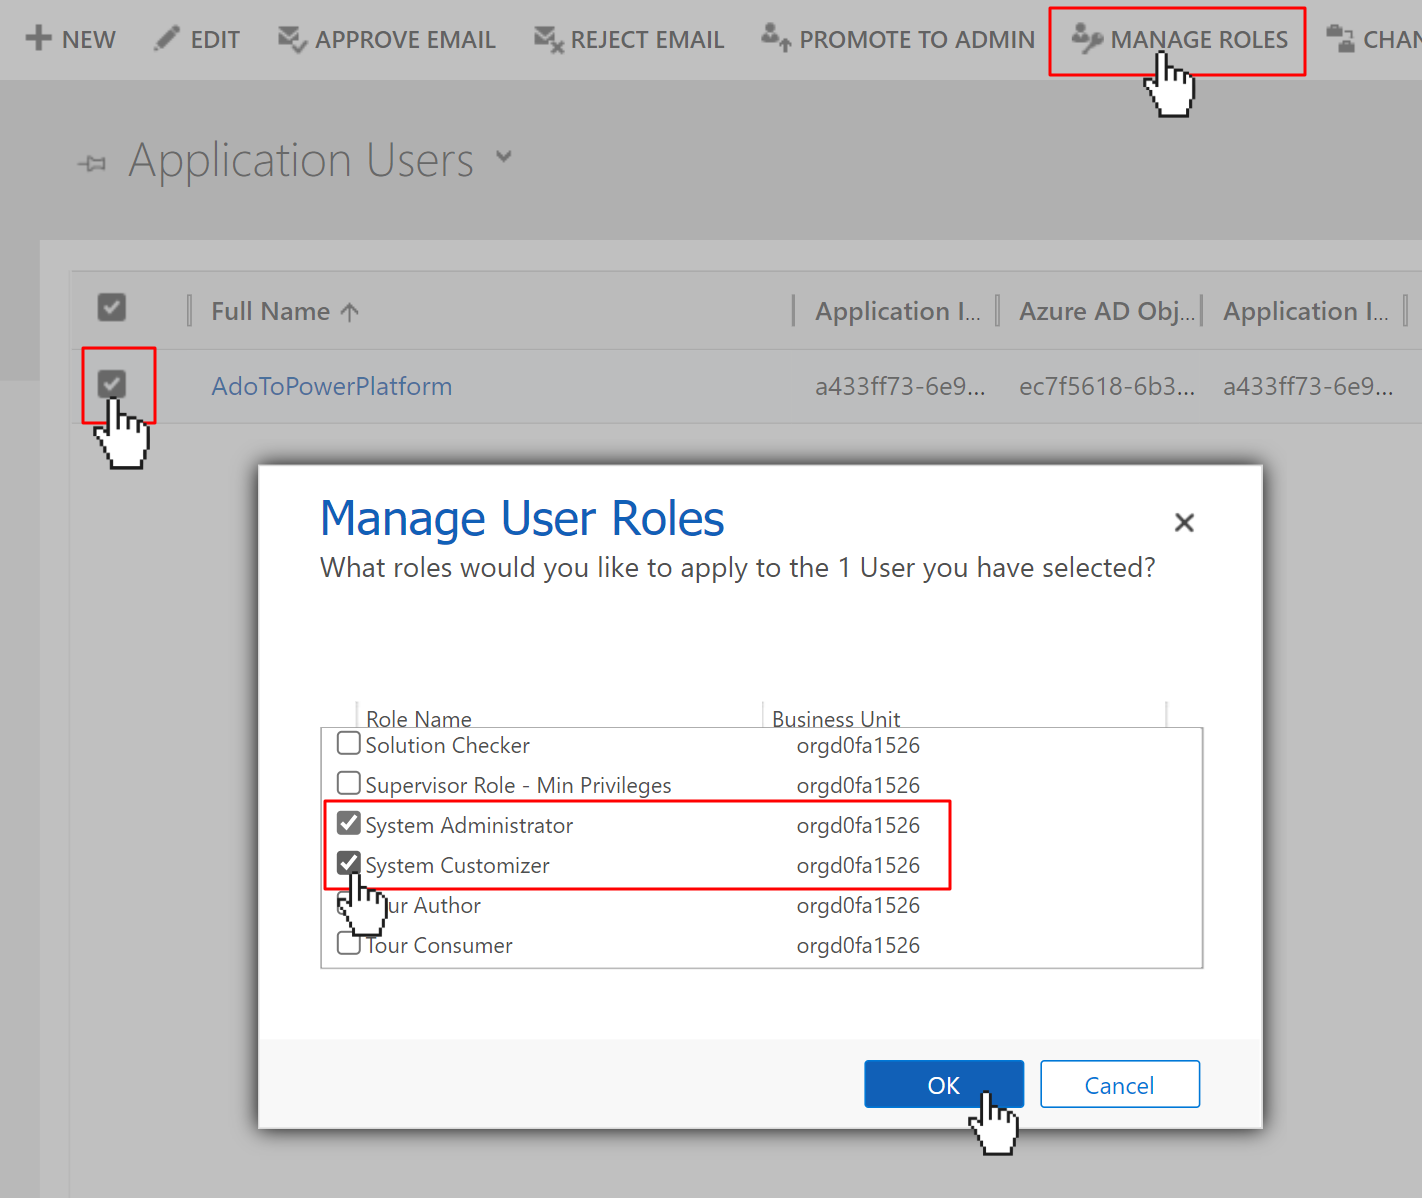 Modal to manage user roles